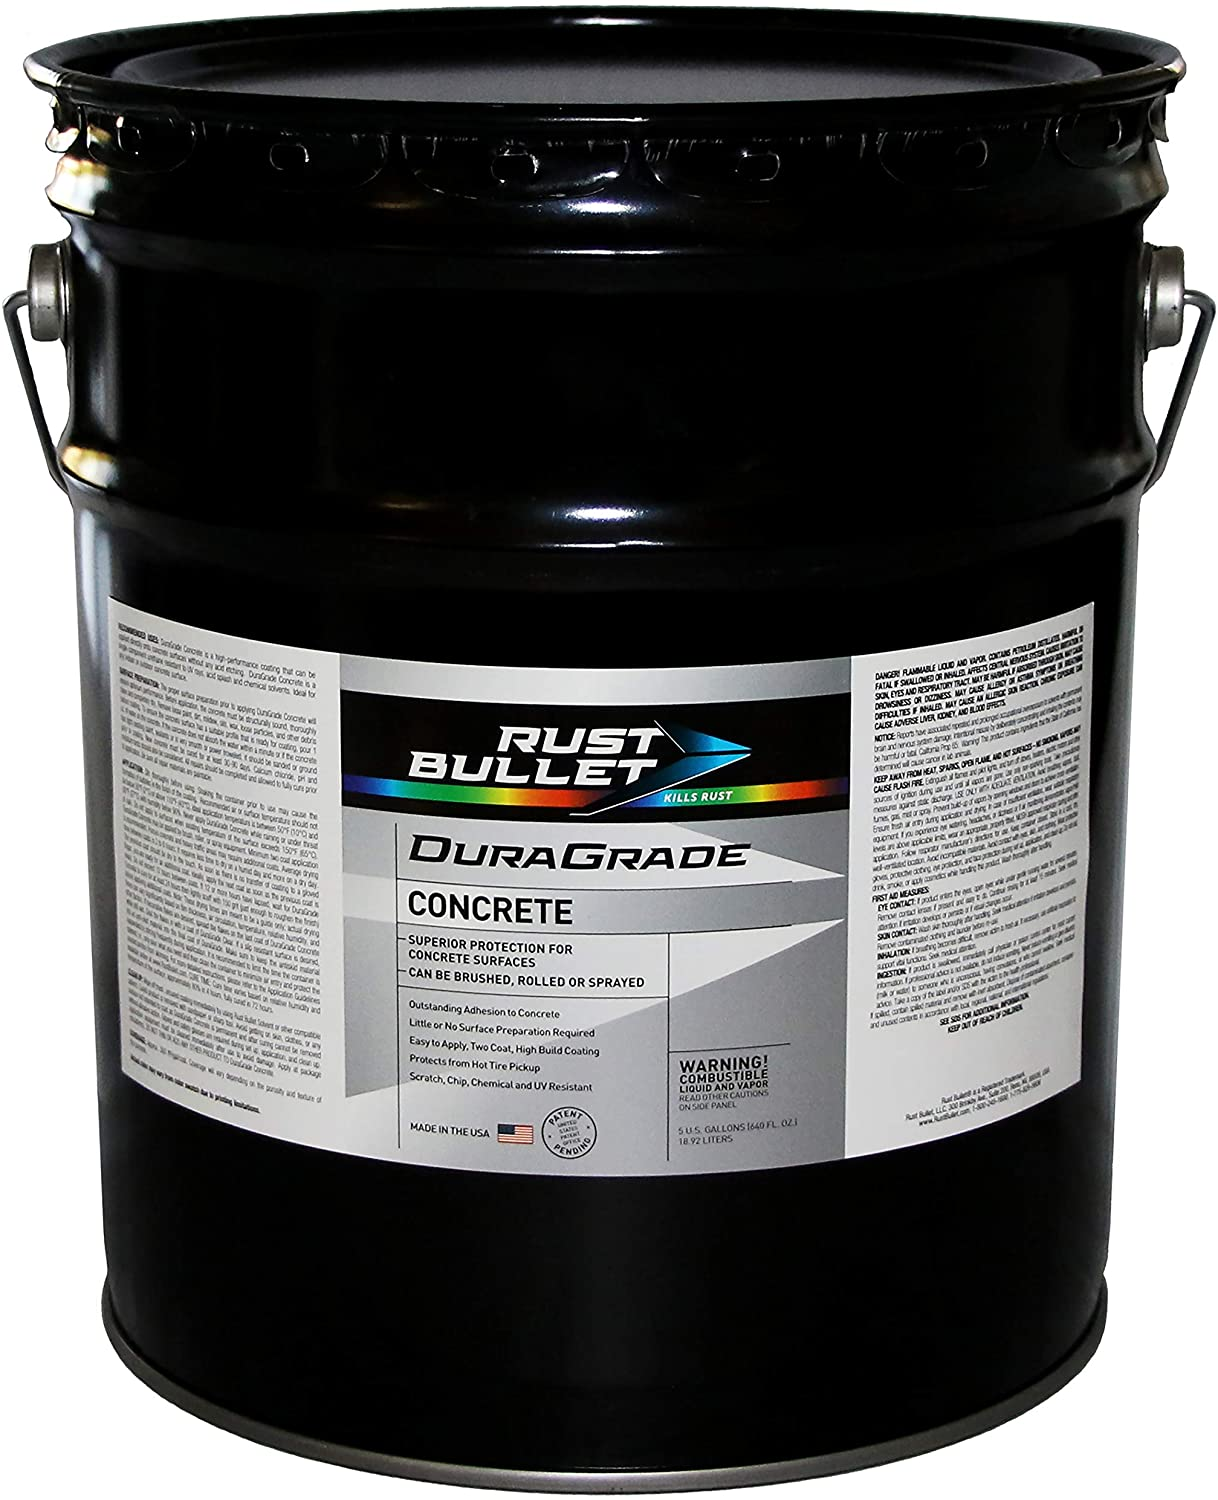 Rust Bullet DuraGrade Concrete High-Performance Easy to Apply Concrete Coating in Vibrant Colors for Garage Floors, Basements, Porch, Patio and More.- (5 Gallons, Pistachio)